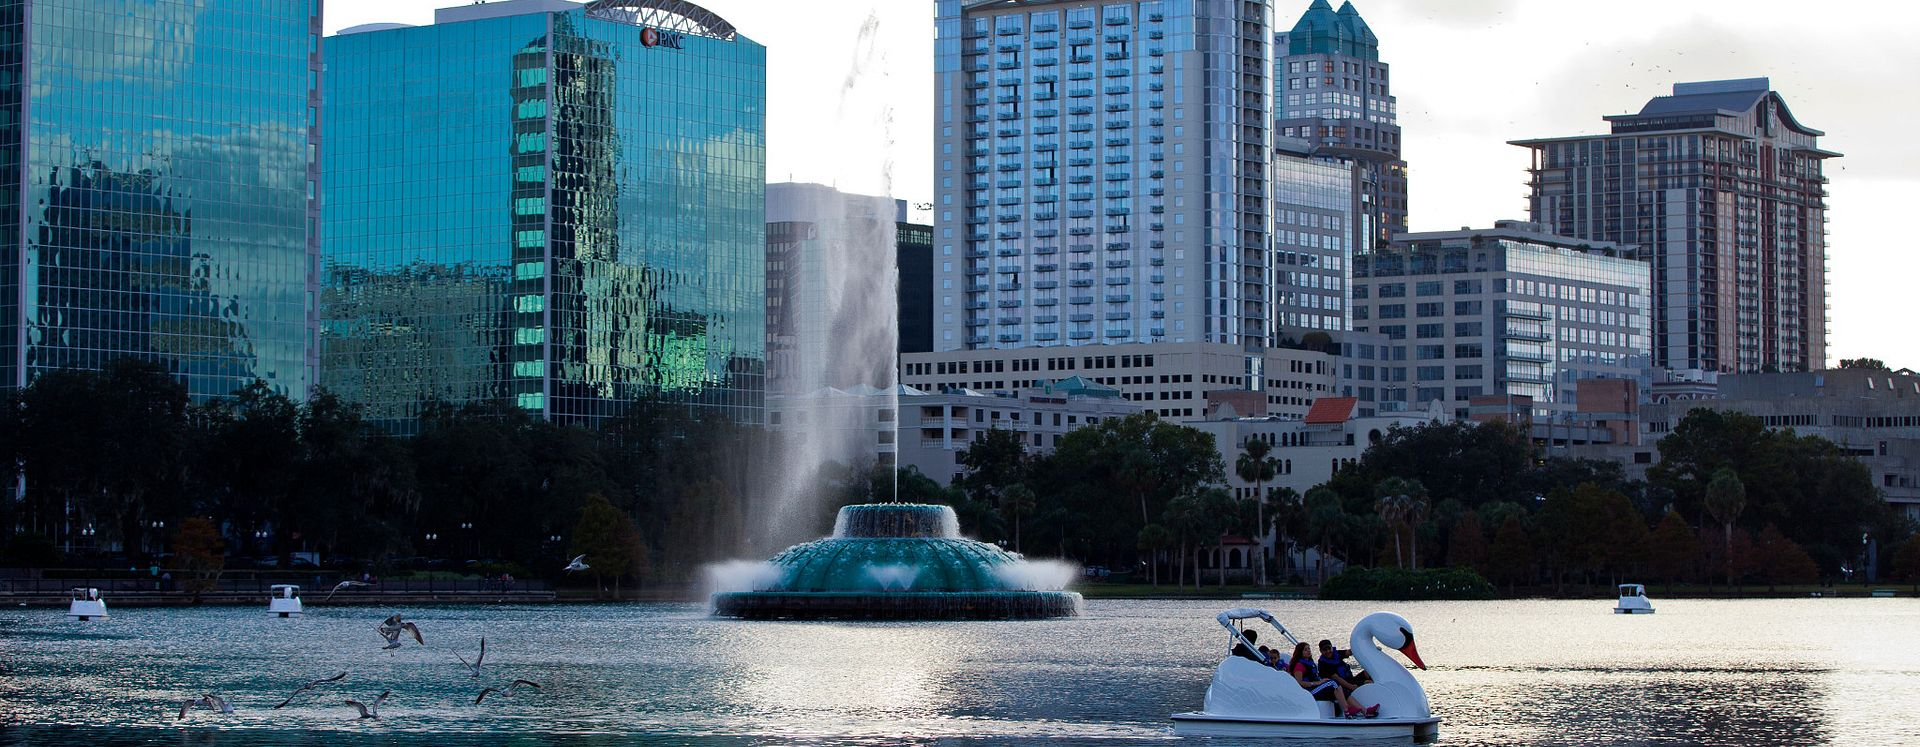 A swan boat and fountain on Lake Eola in downtown Orlando at dusk.